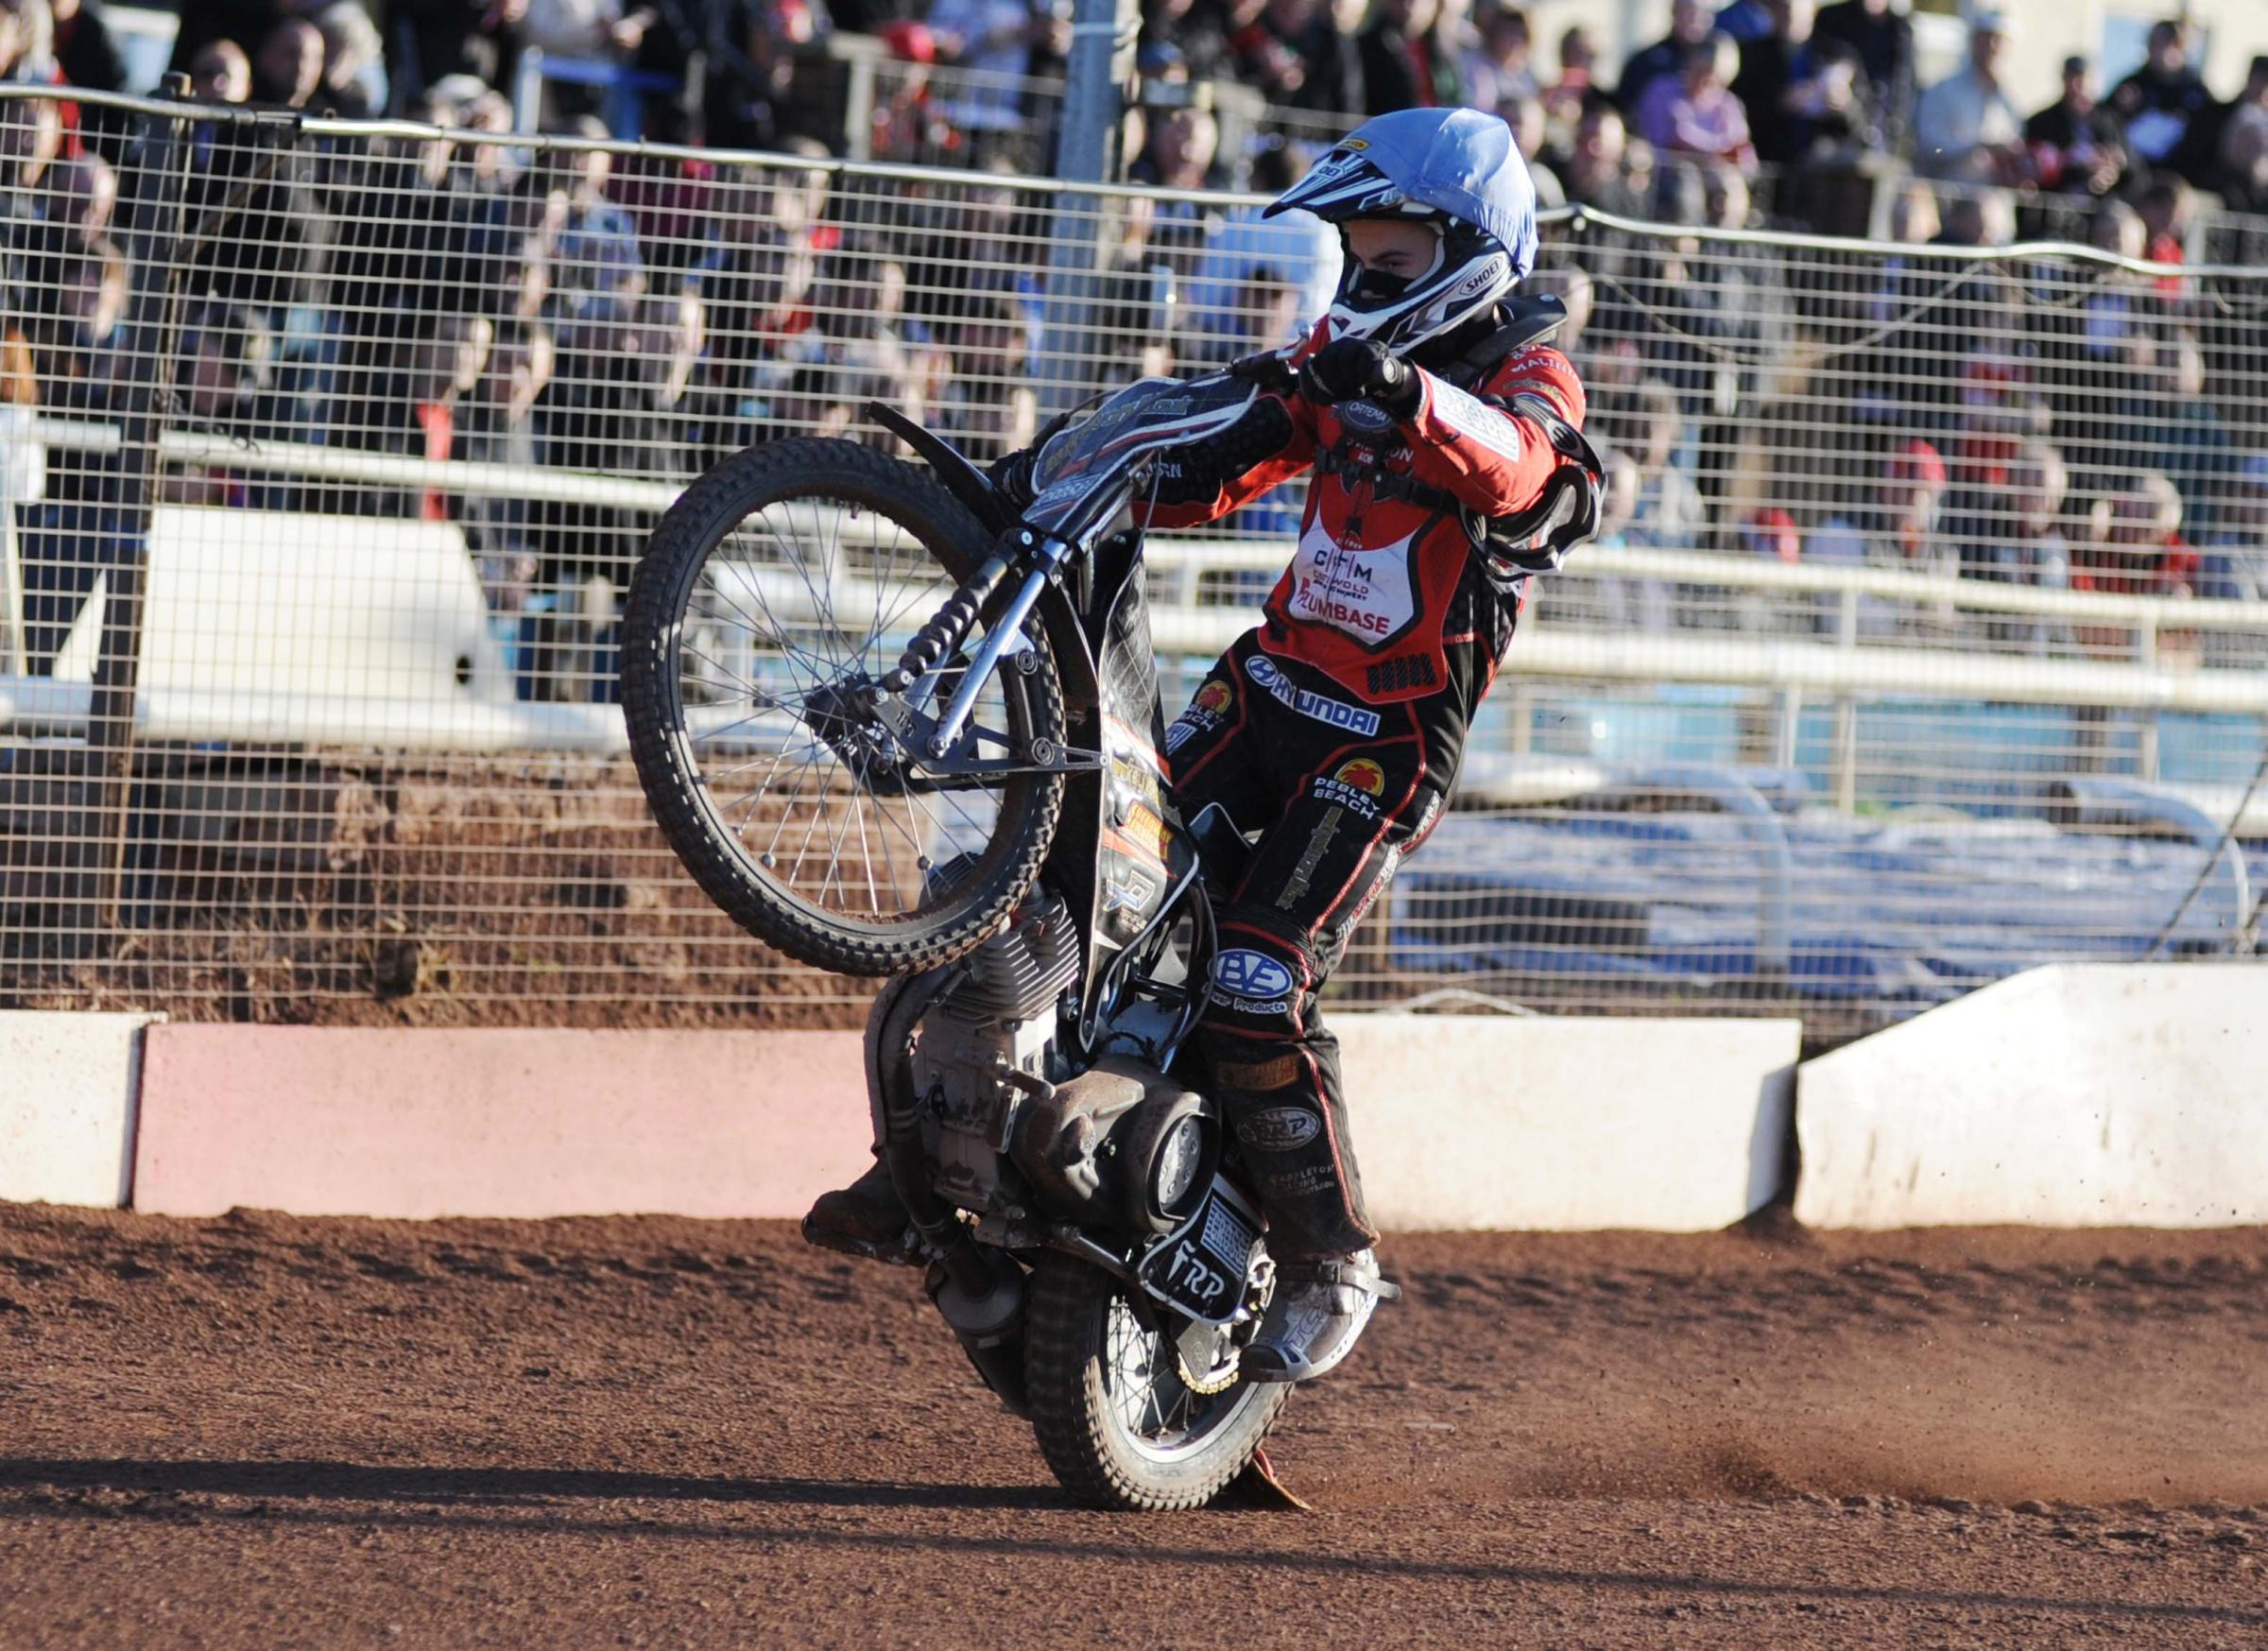 Swindon Robins ace Zach Wajtknecht hoping to complete recovery from